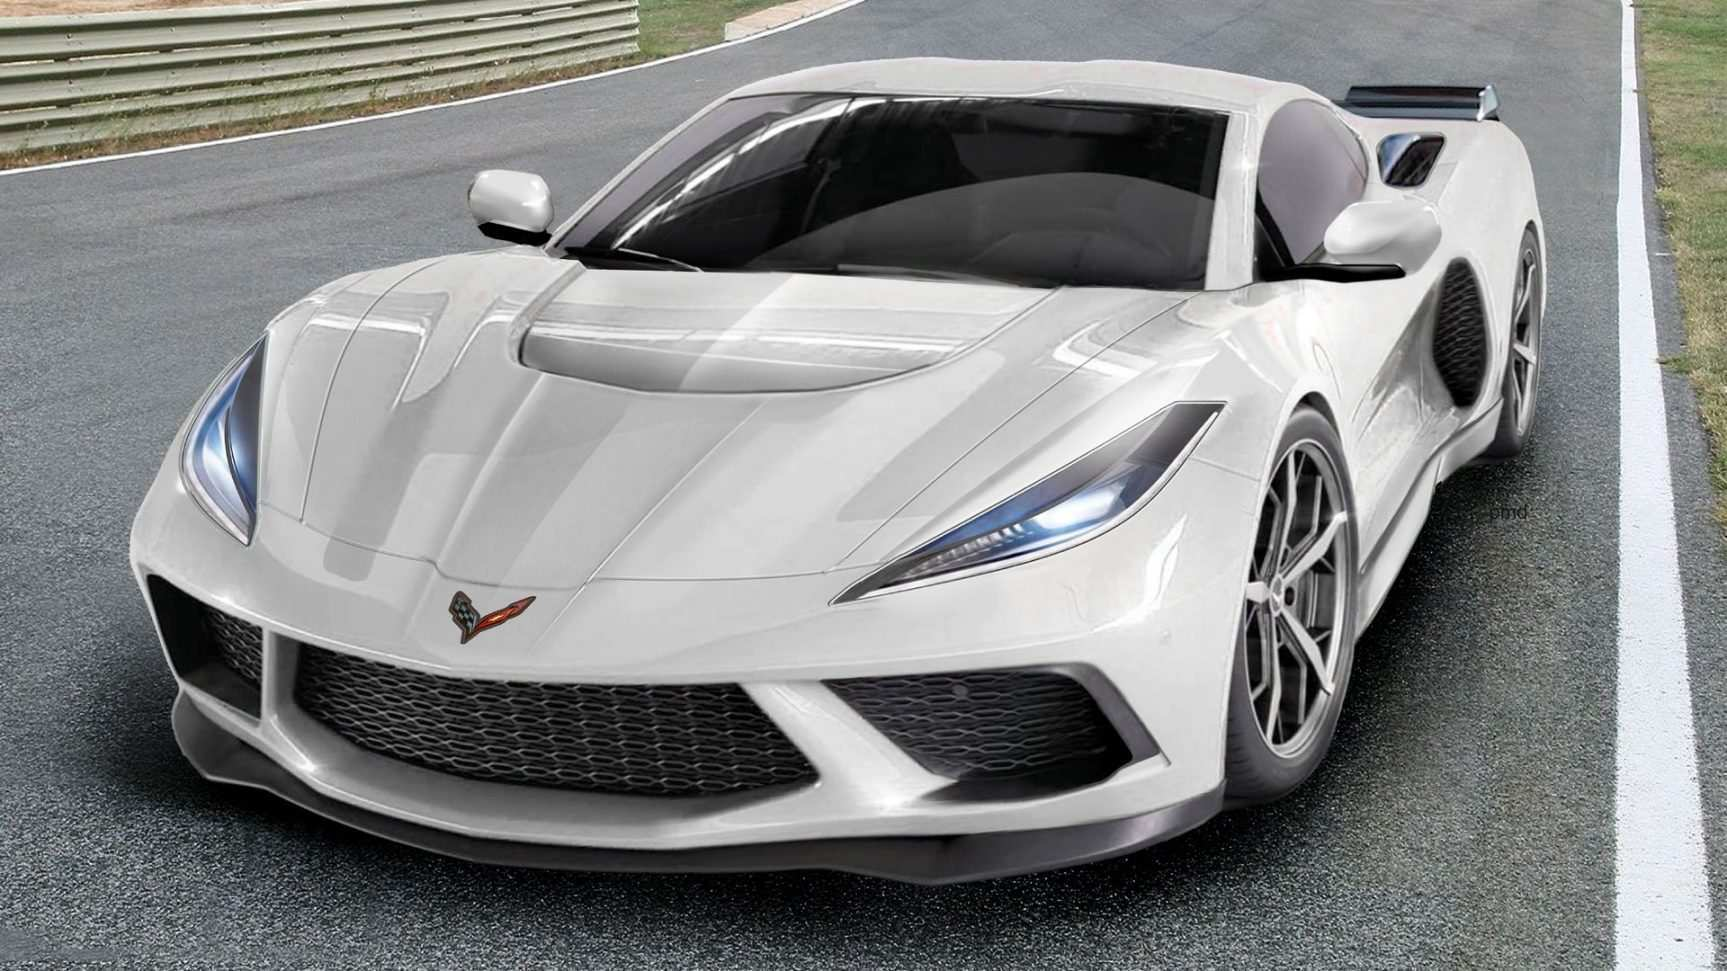 35 New Pictures Of The 2020 Chevrolet Corvette Model